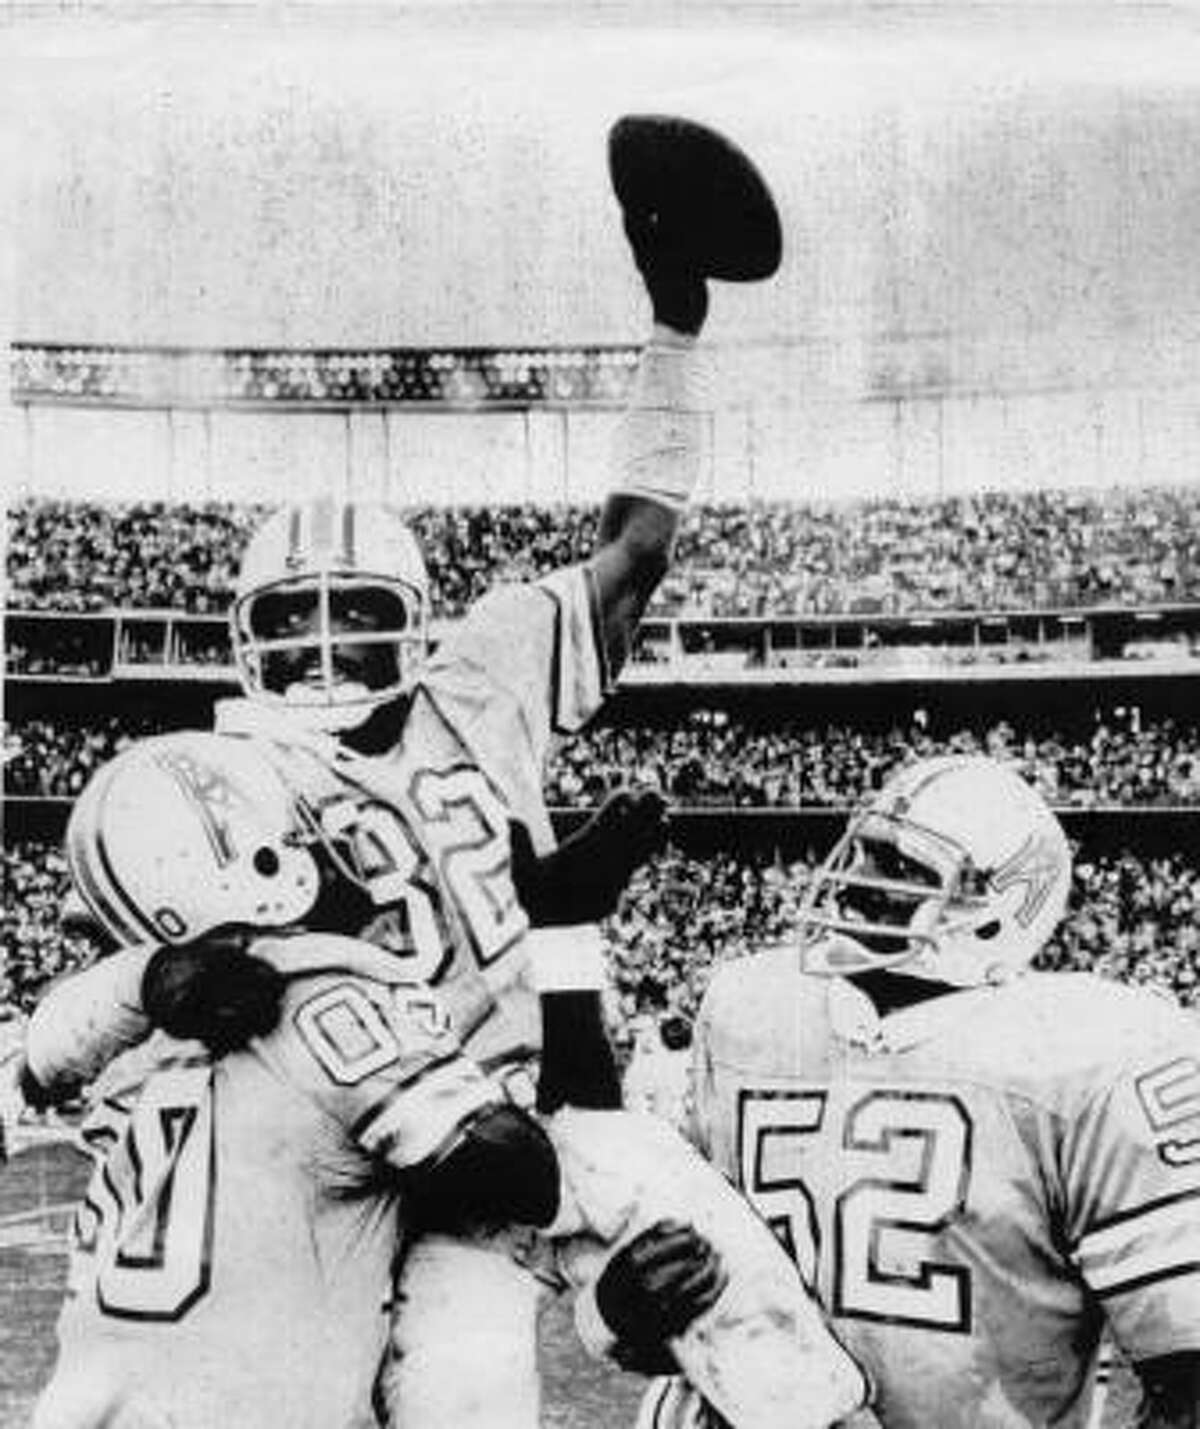 Dec. 29, 1979: Playing without injured standouts Dan Pastorini, Earl Campbell and Ken Burrough, the Oilers beat the San Diego Chargers 17-14 in San Diego to advance to their second straight AFC title game against the Steelers. Backup quarterback Gifford Nielsen starts for the Oilers, and safety Vernon Perry intercepts four passes.